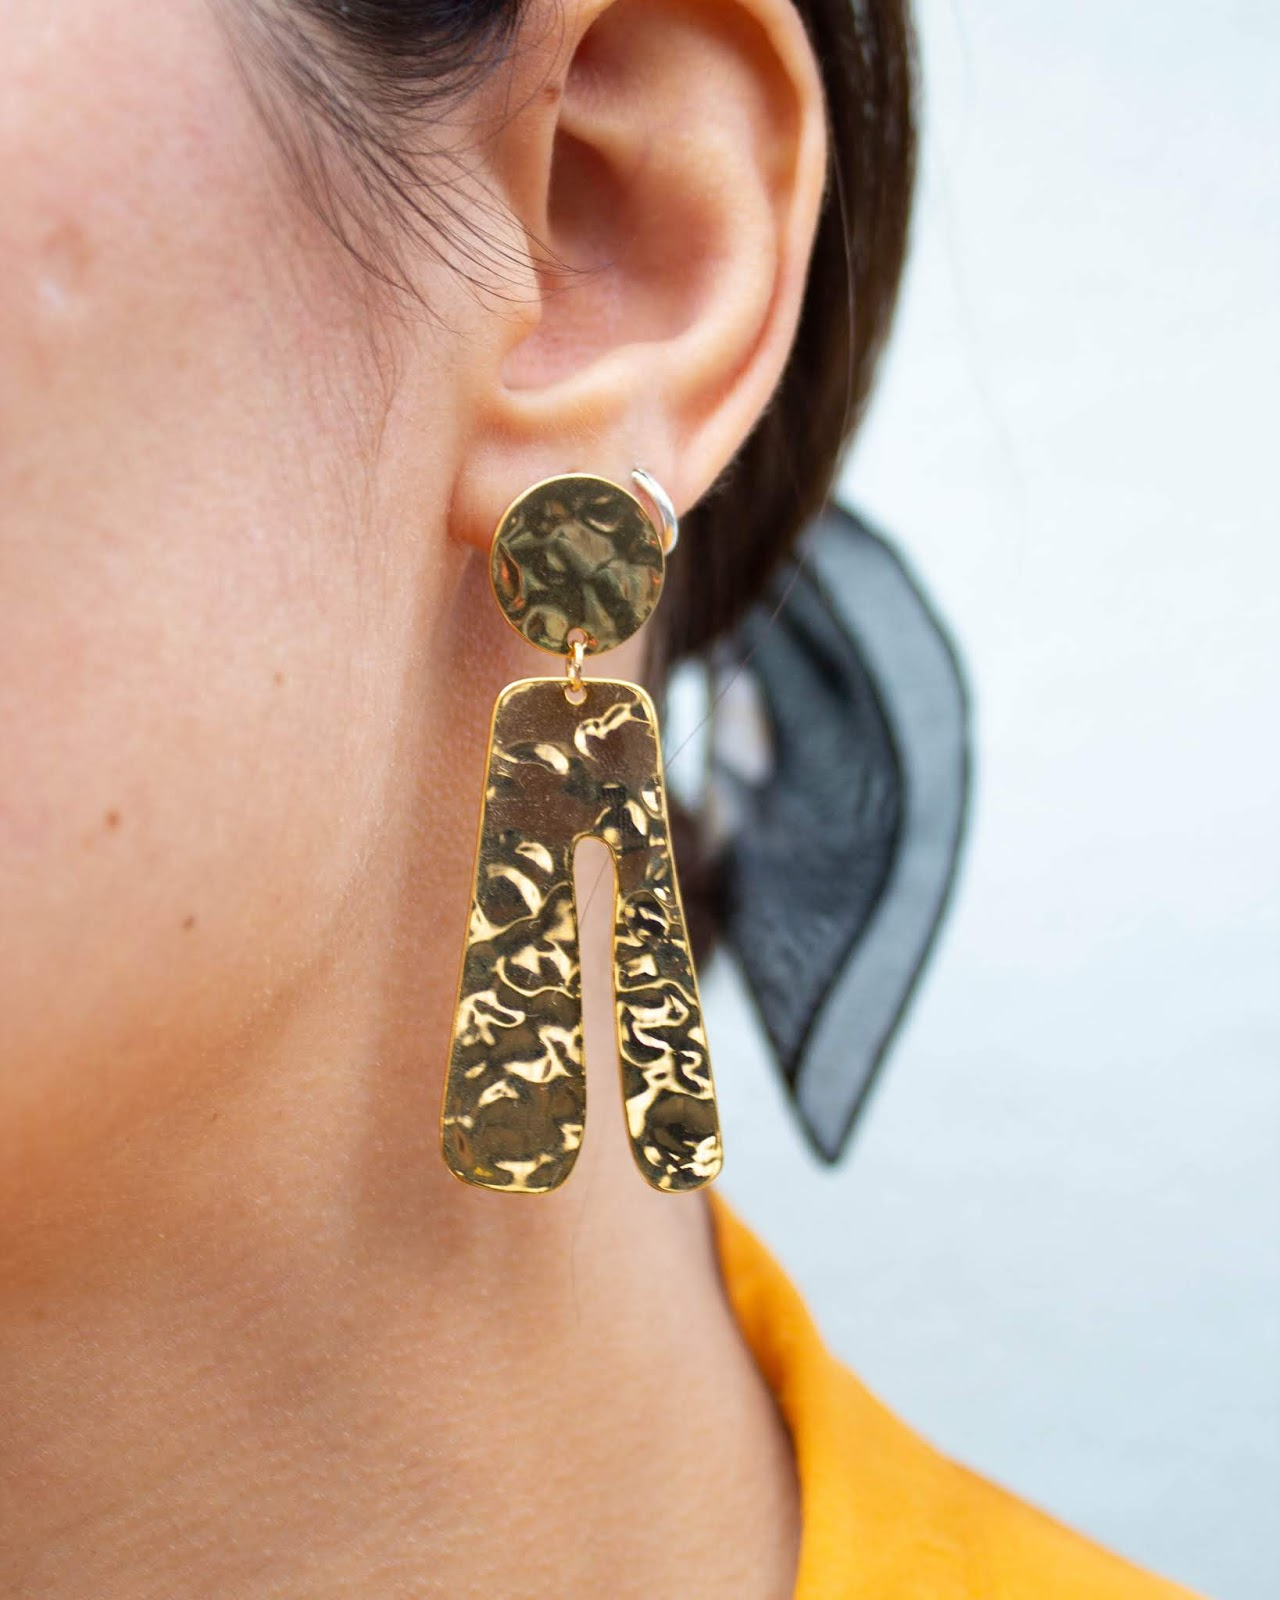 pico the store, pico jeewllery, love improchori, earrings, statement jewellery, made in greece, greek designer, gold plated, gift, semi fine